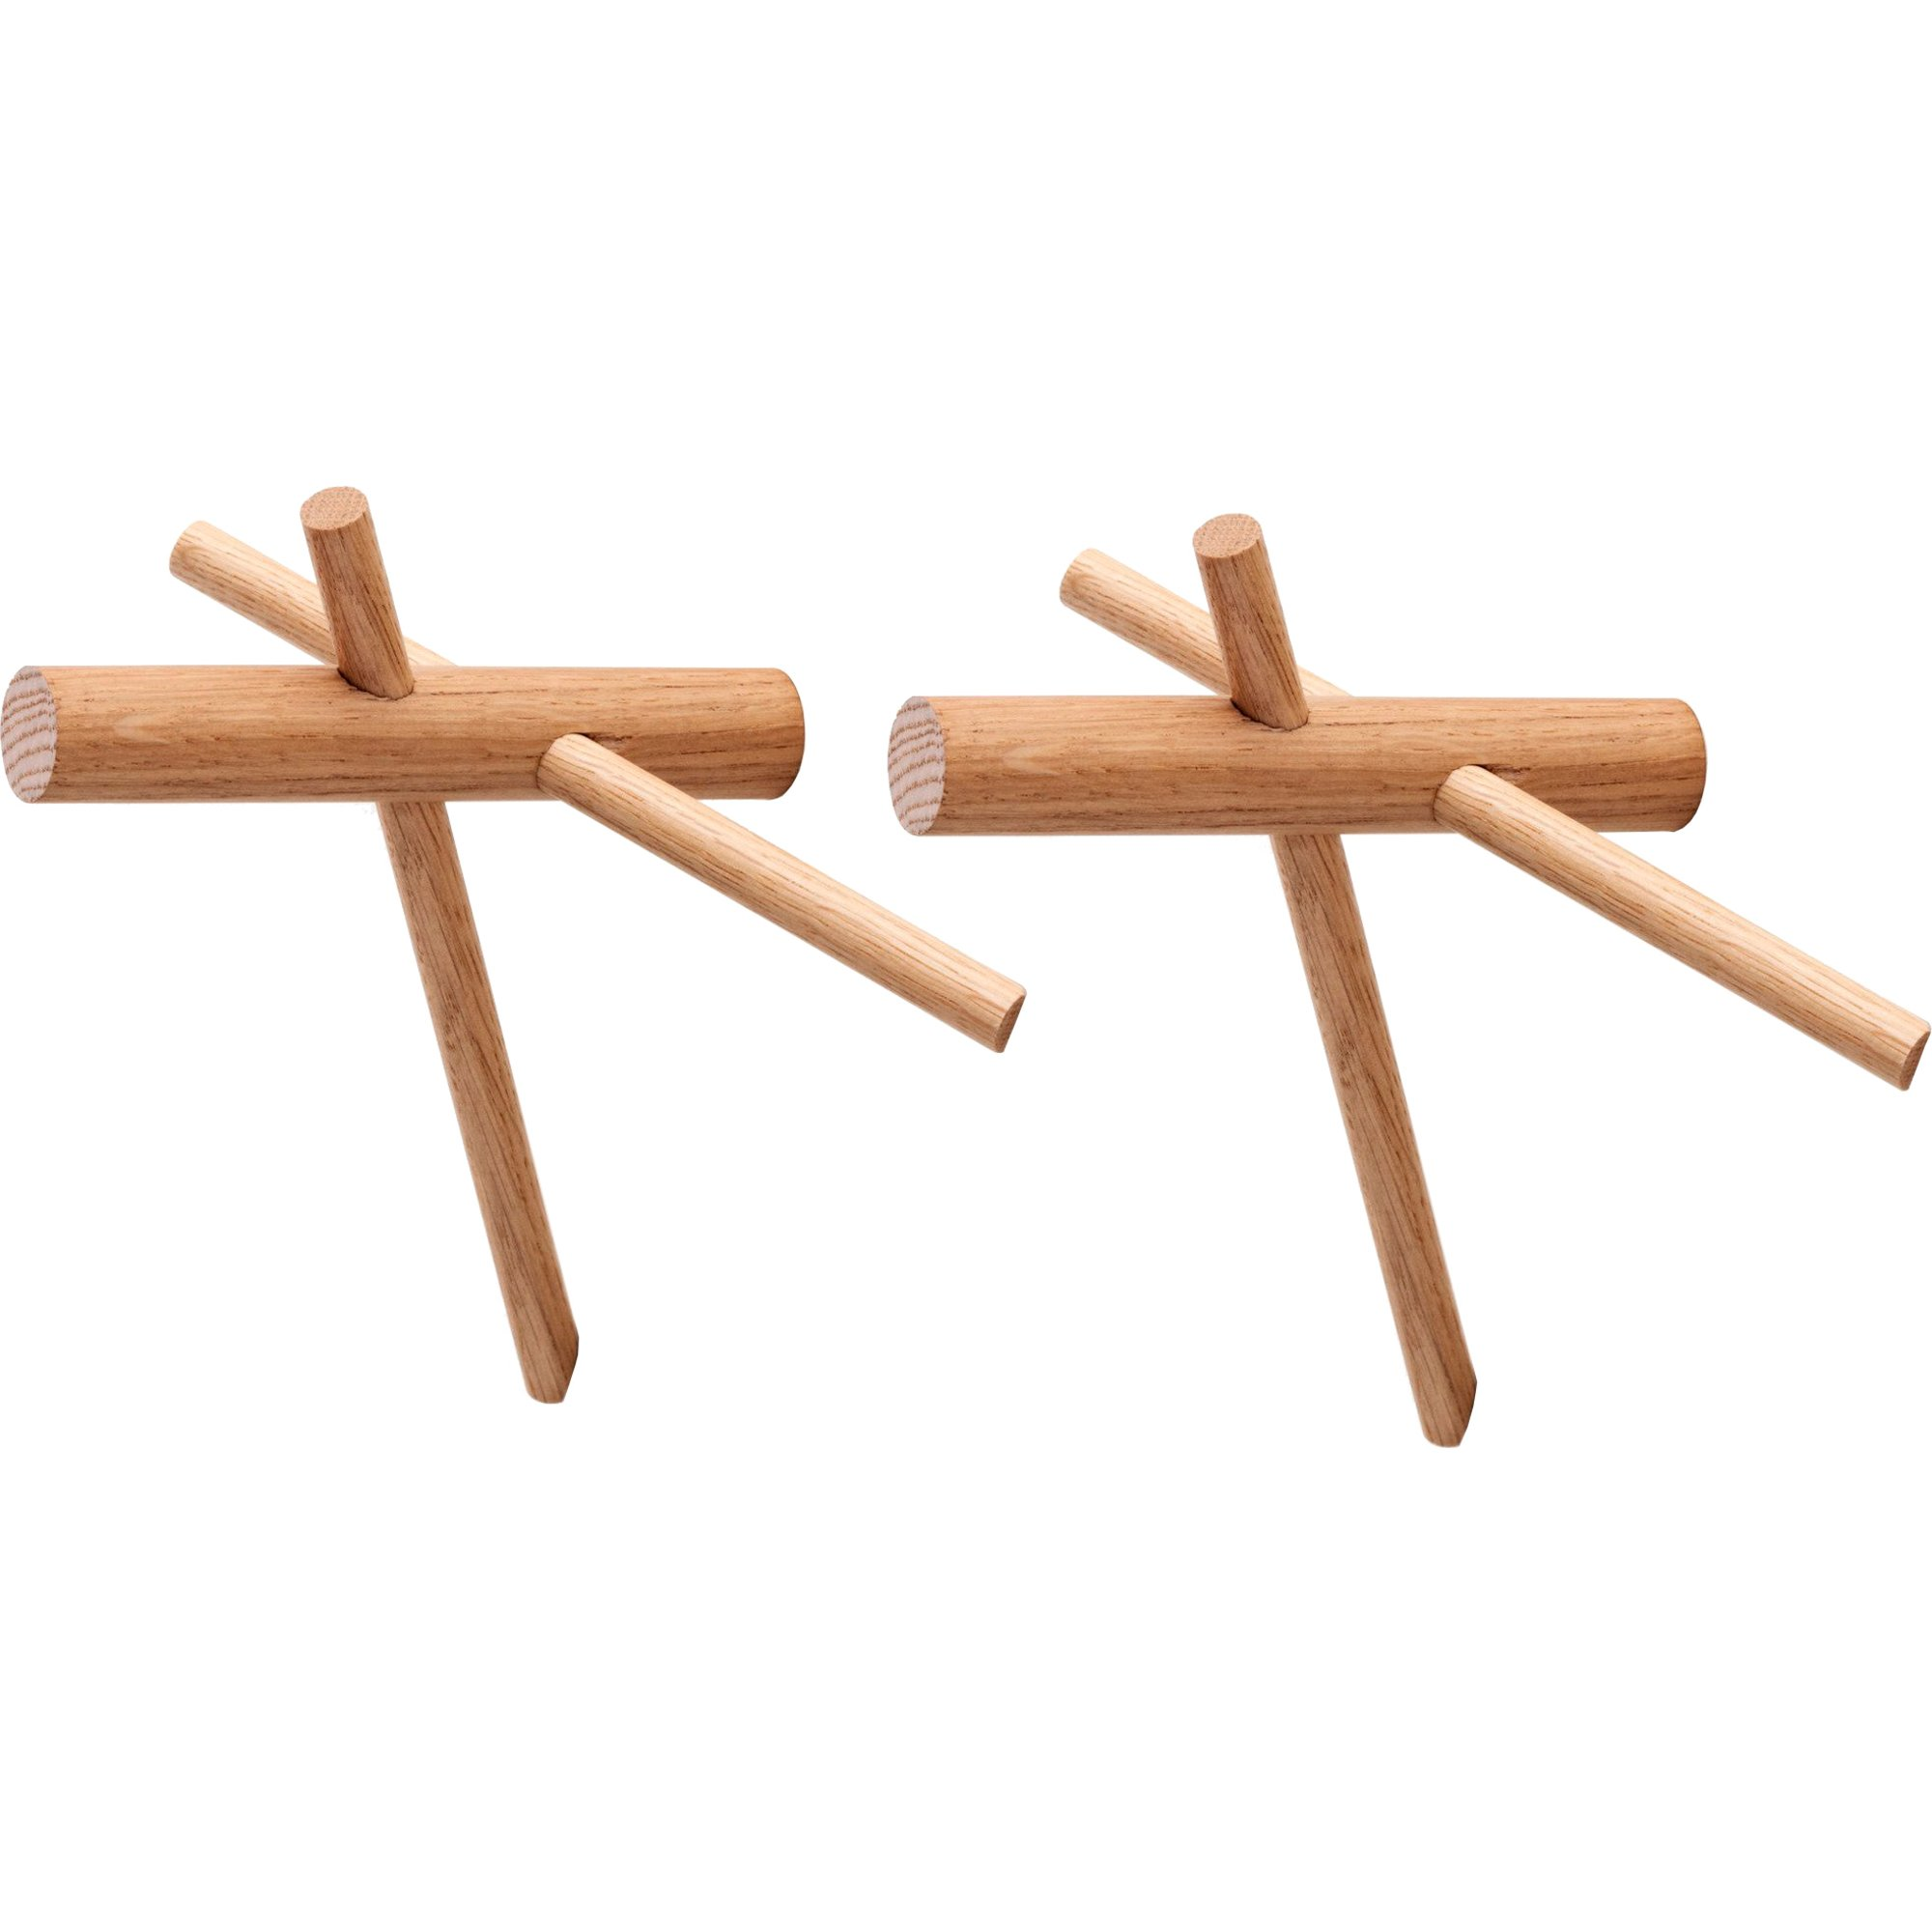 Normann Copenhagen Sticks Hooks – 2 pcs Nature